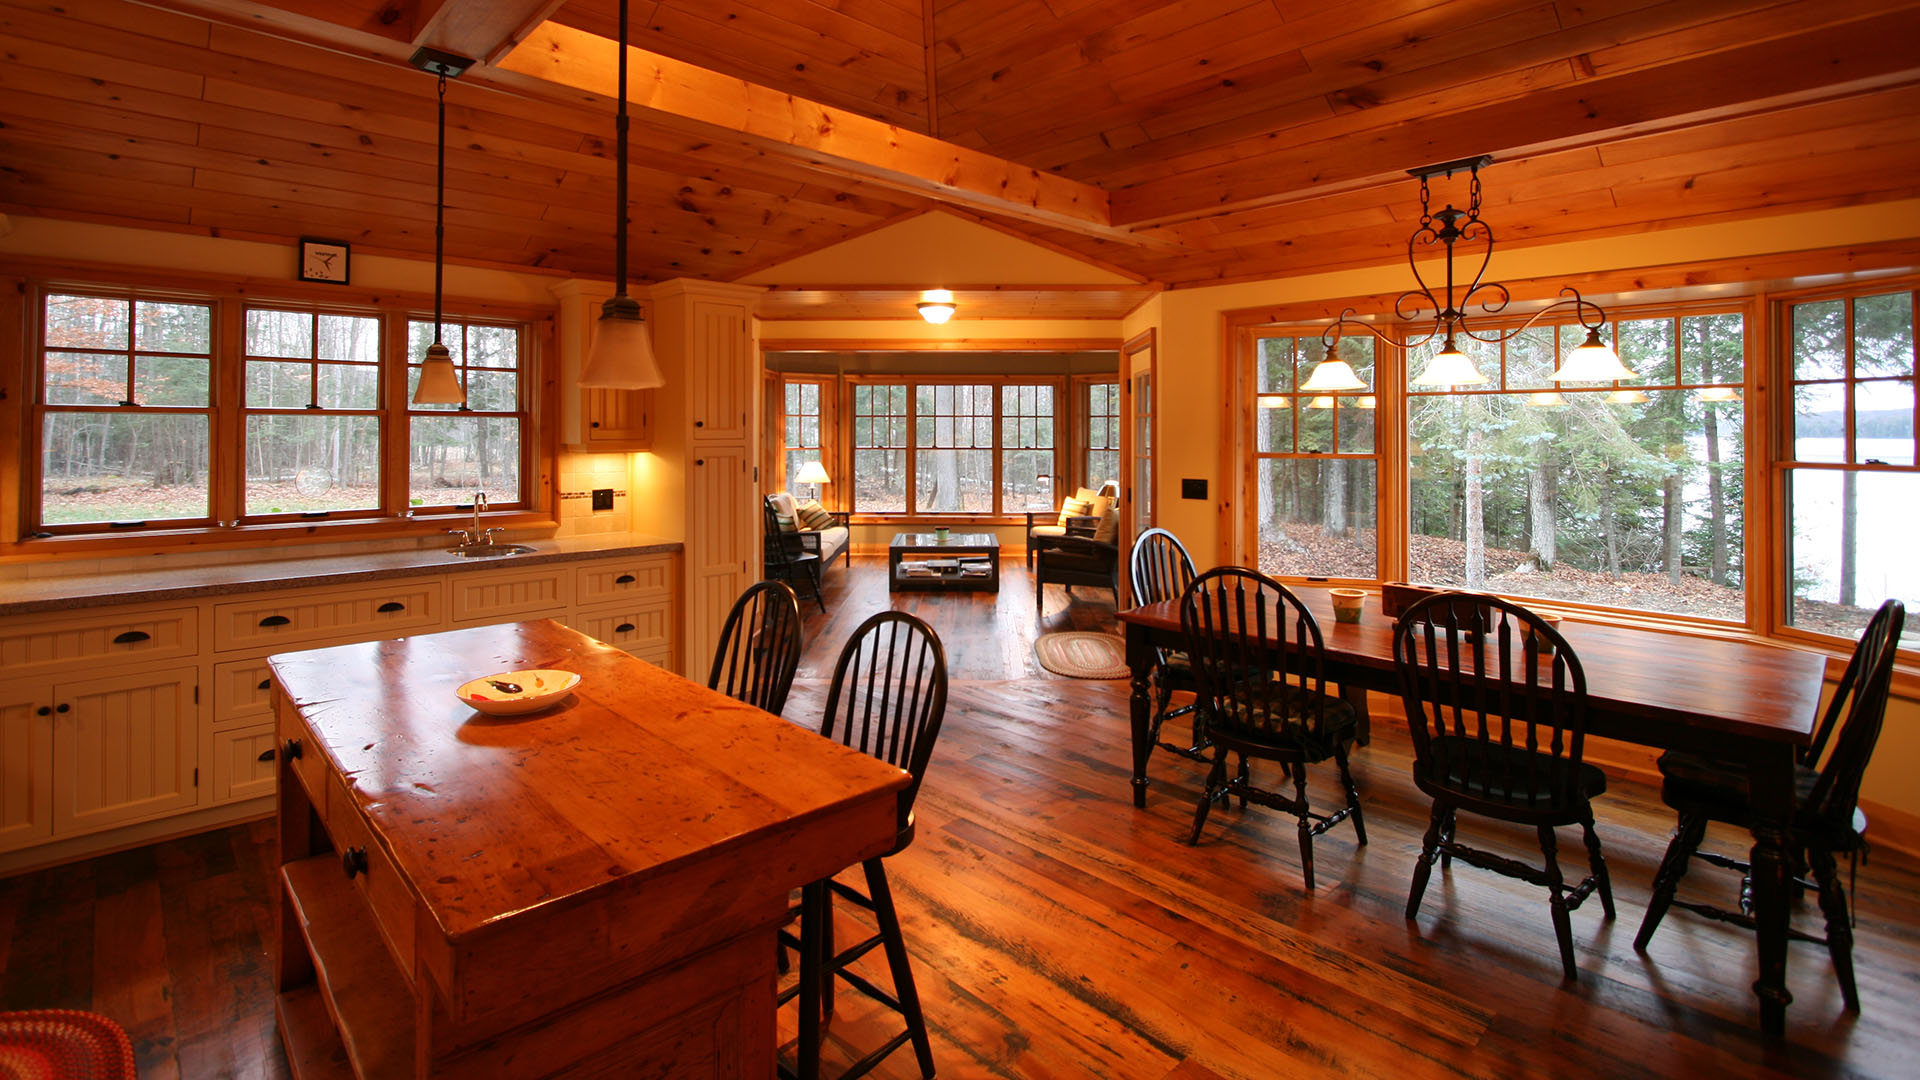 architect designed cottage - lake of bays muskoka - kitchen sunroom eating